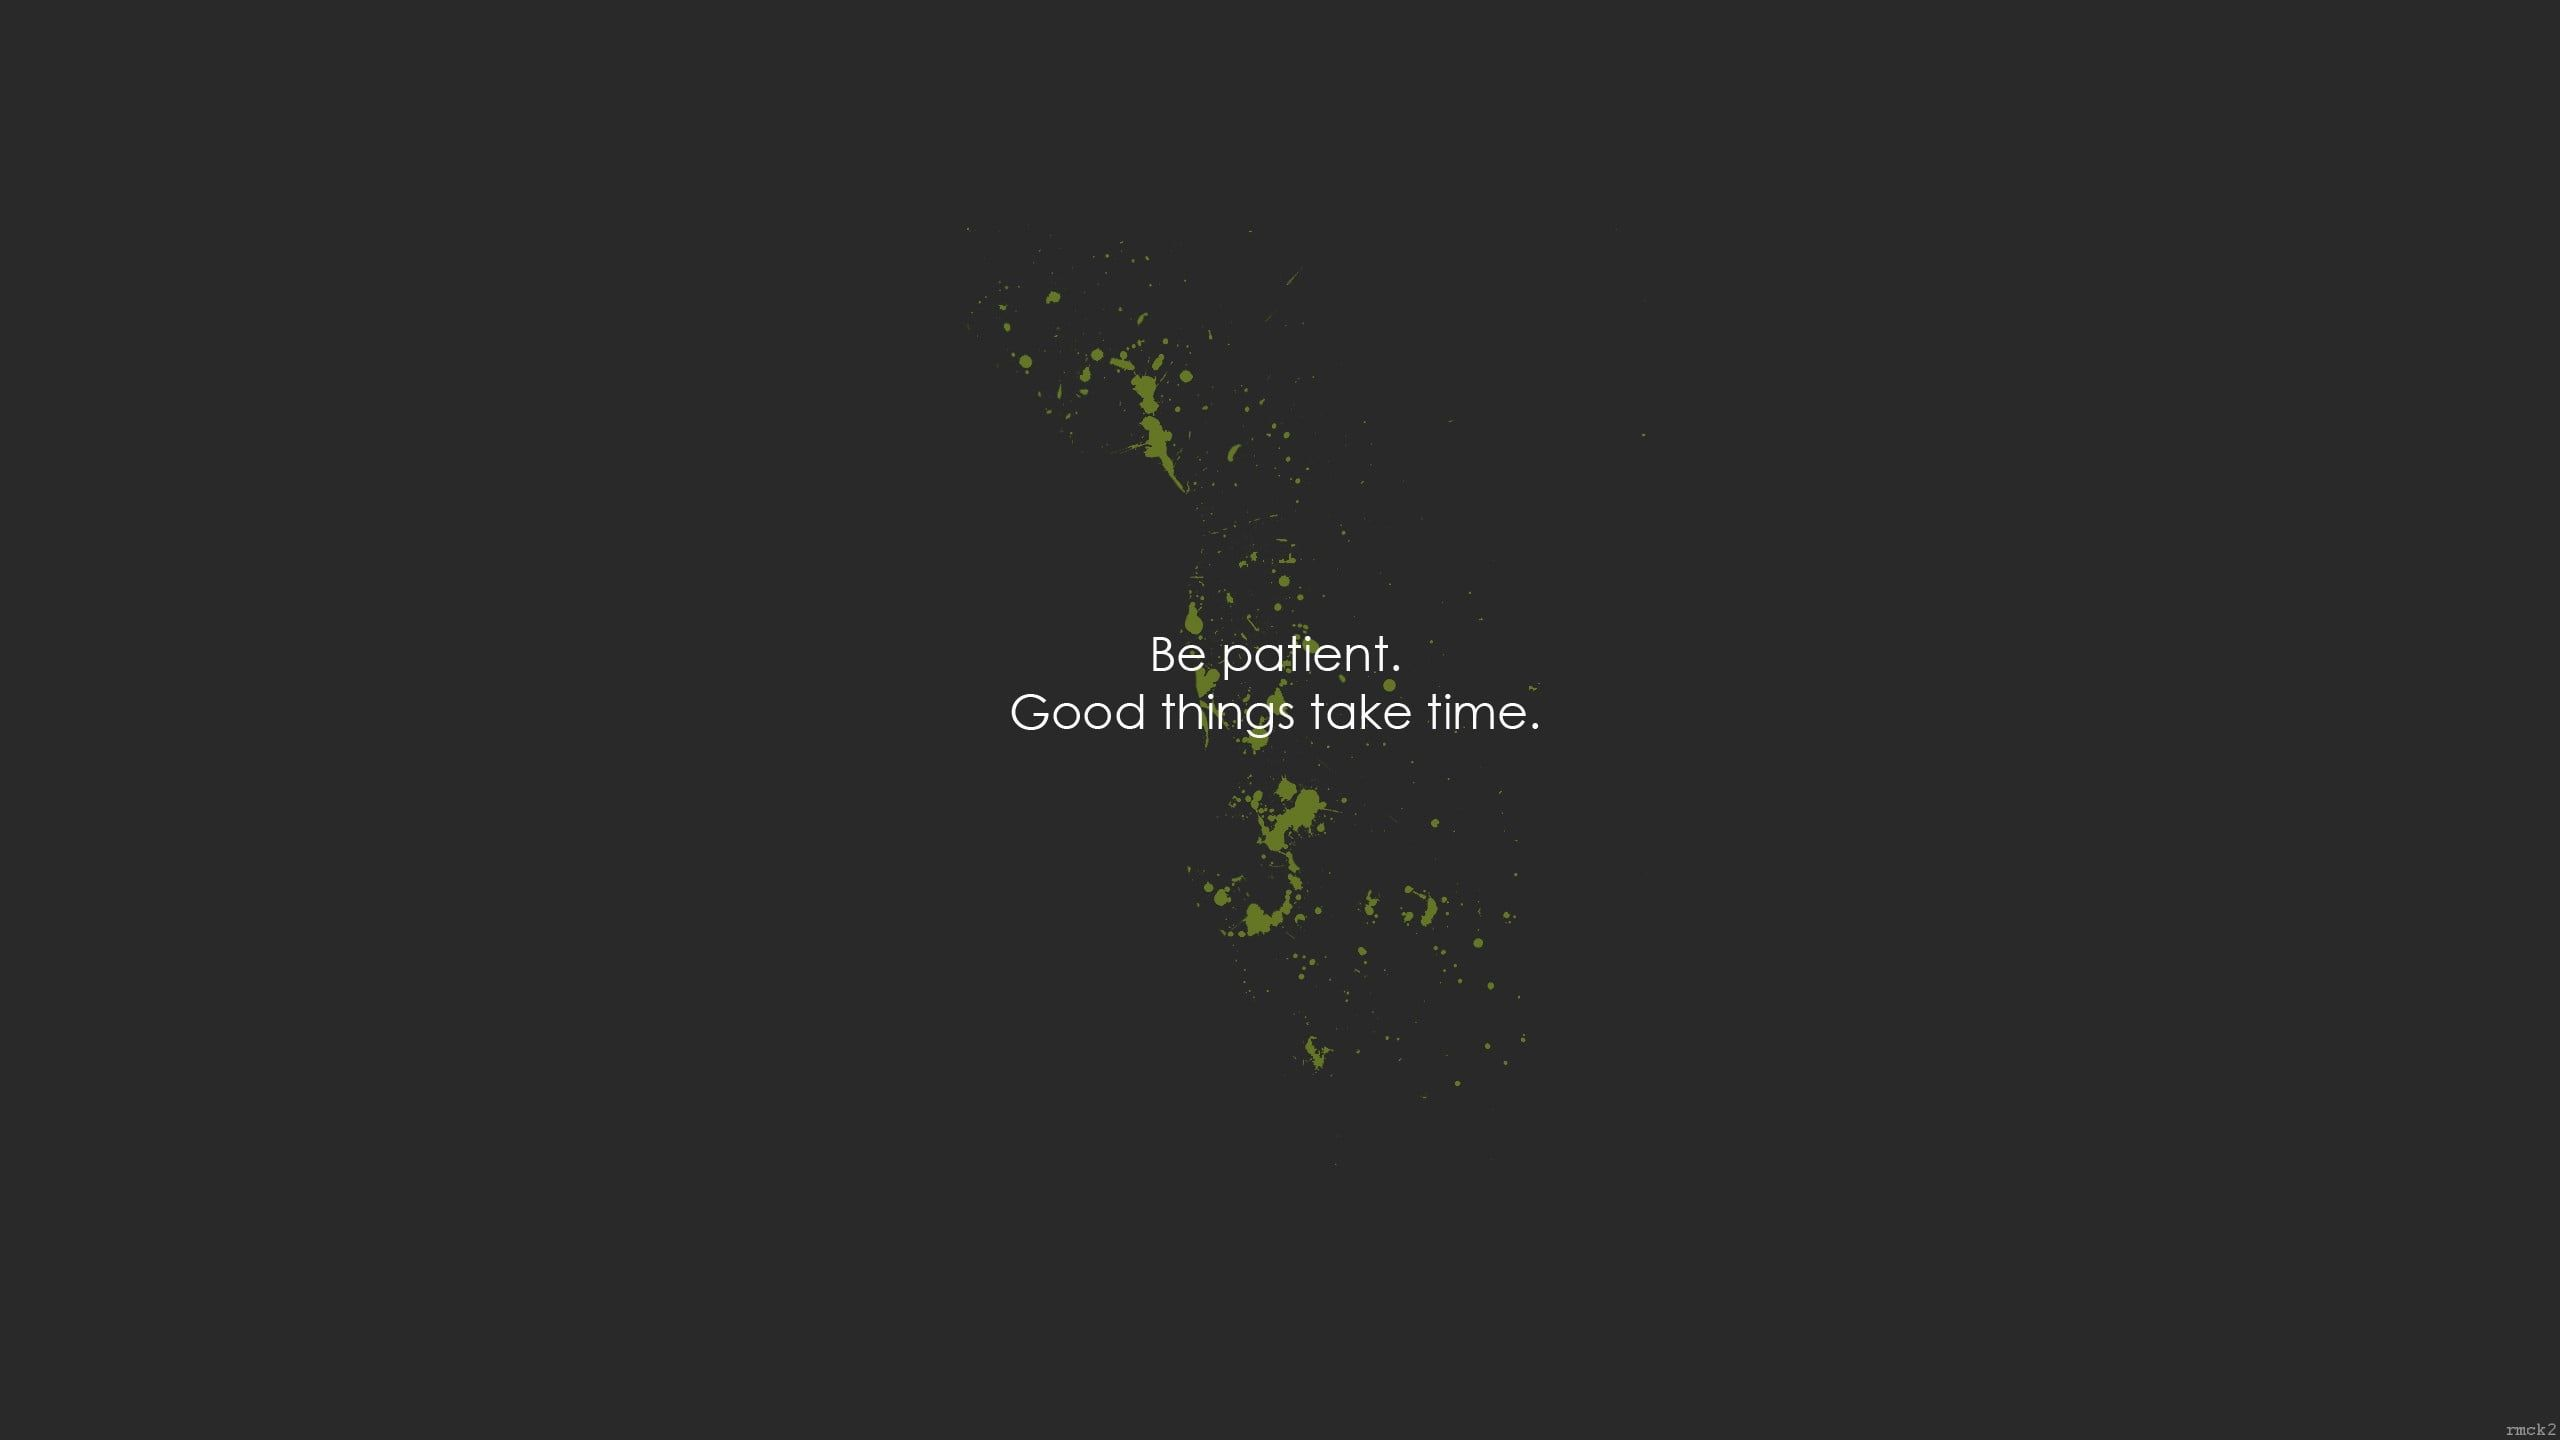 Be Patient Good Things Take Time Wallpaper Quote Book Quotes Western Script Wallpaper Quotes Lockscreen Iphone Quotes Good Things Take Time